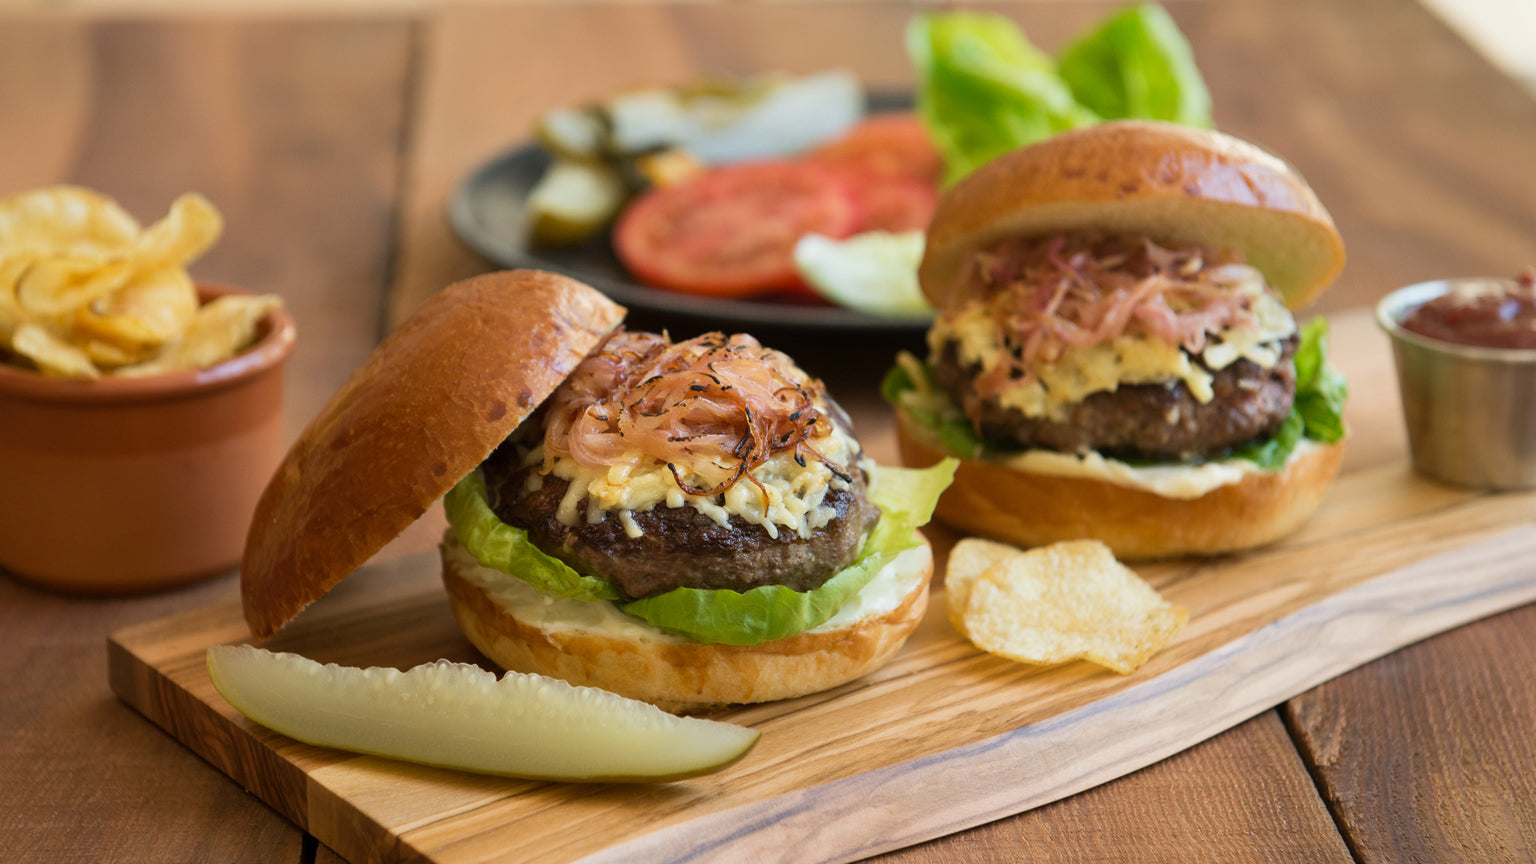 5 Tips to Build a Better Burger